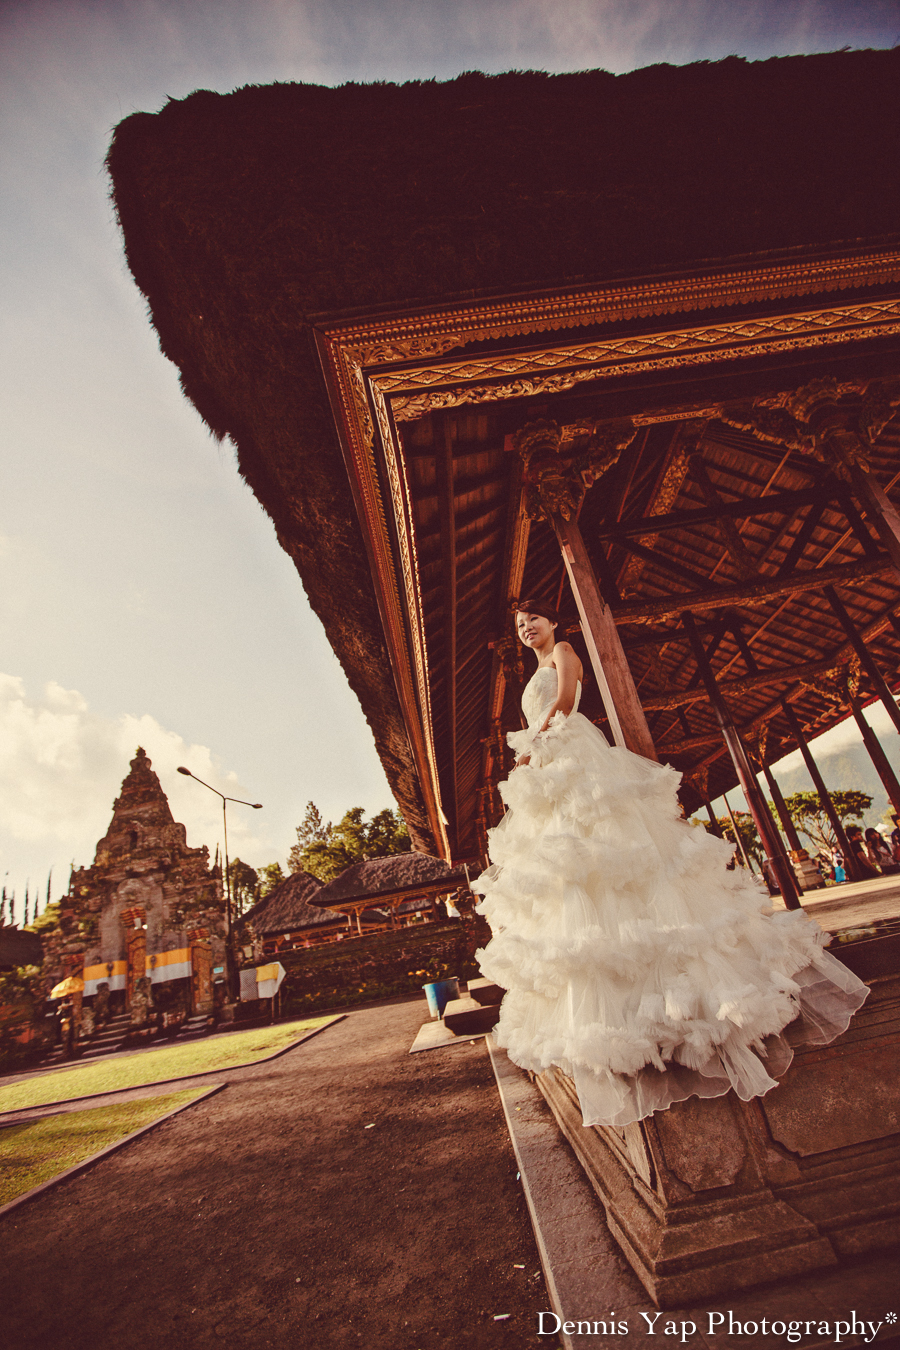 weng wai lisa pre wedding bali indonesia dennis yap photography malaysia wedding photographer asia top 30 beloved-16.jpg